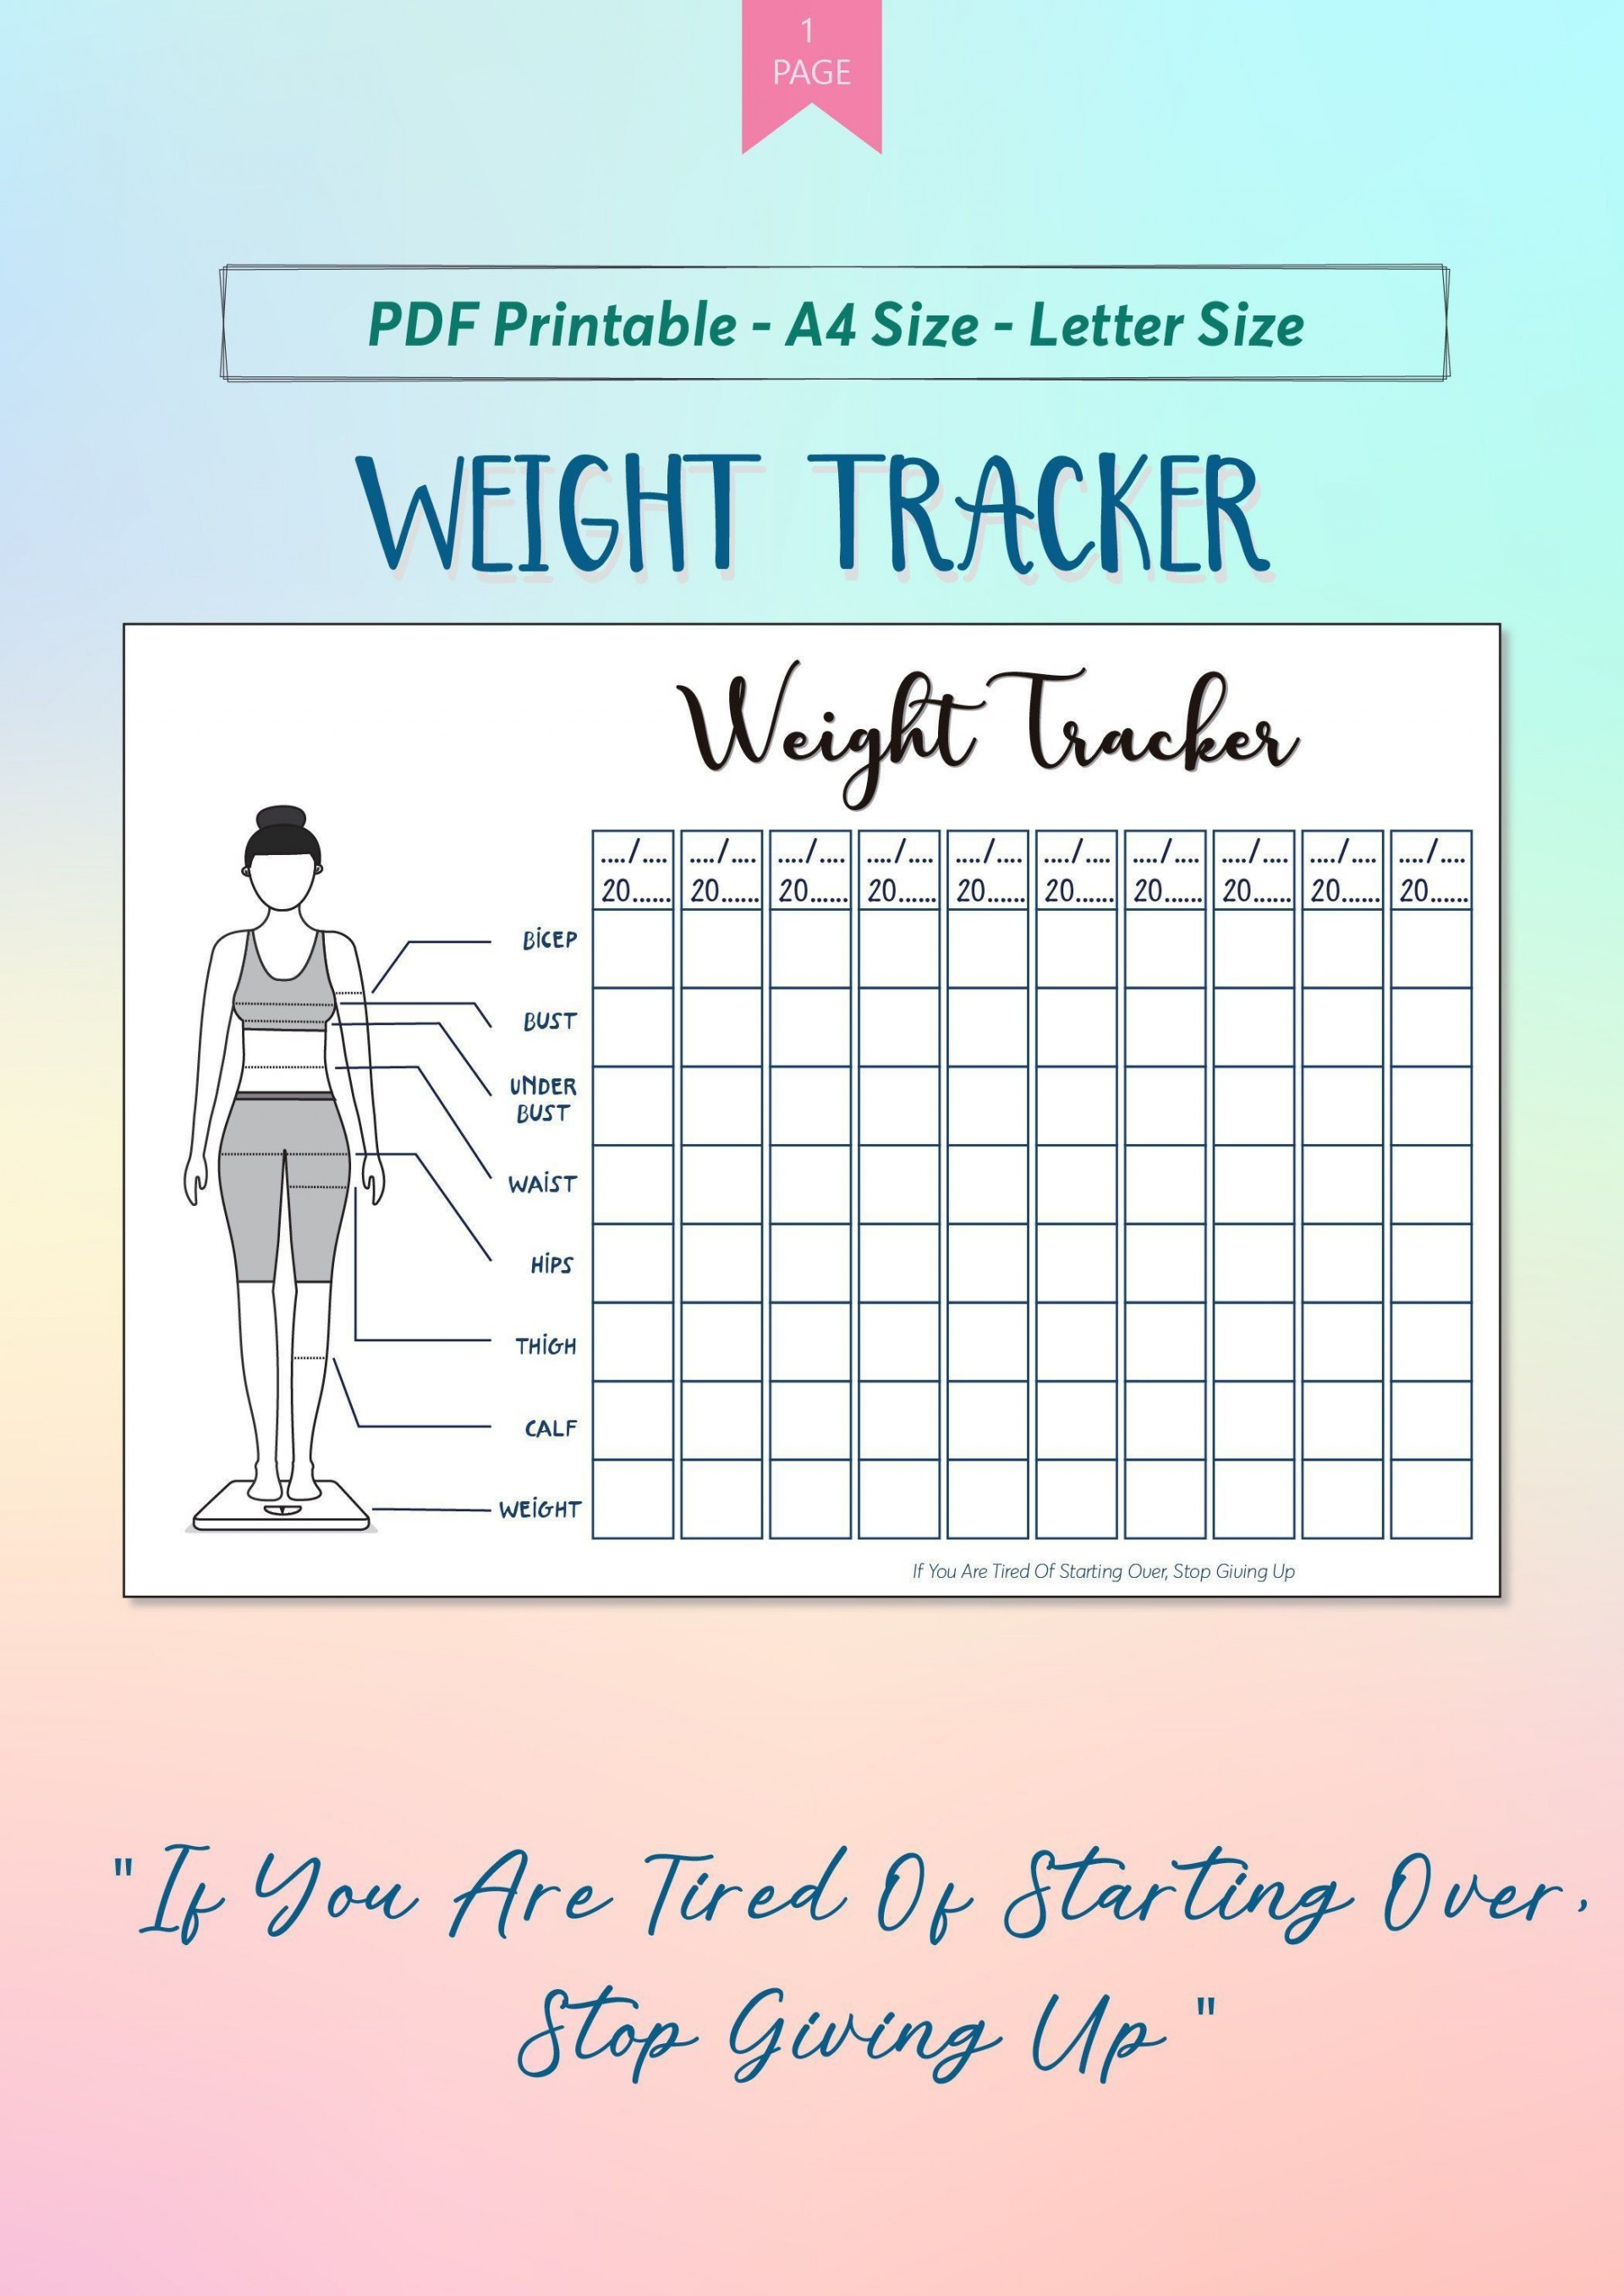 005 Fascinating Weight Los Tracker Template Sample  Weekly In Thi Body I Live Instagram 2019 20201920